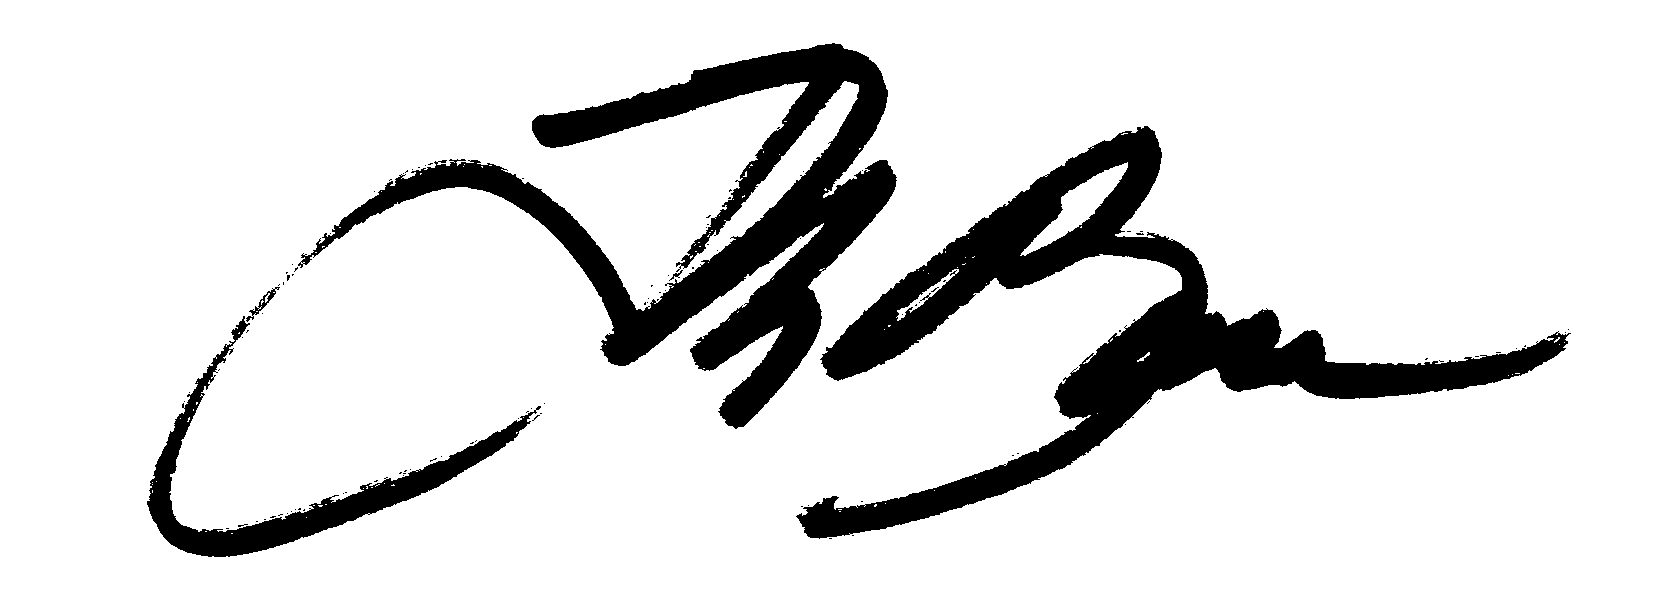 Laura Baur's Signature